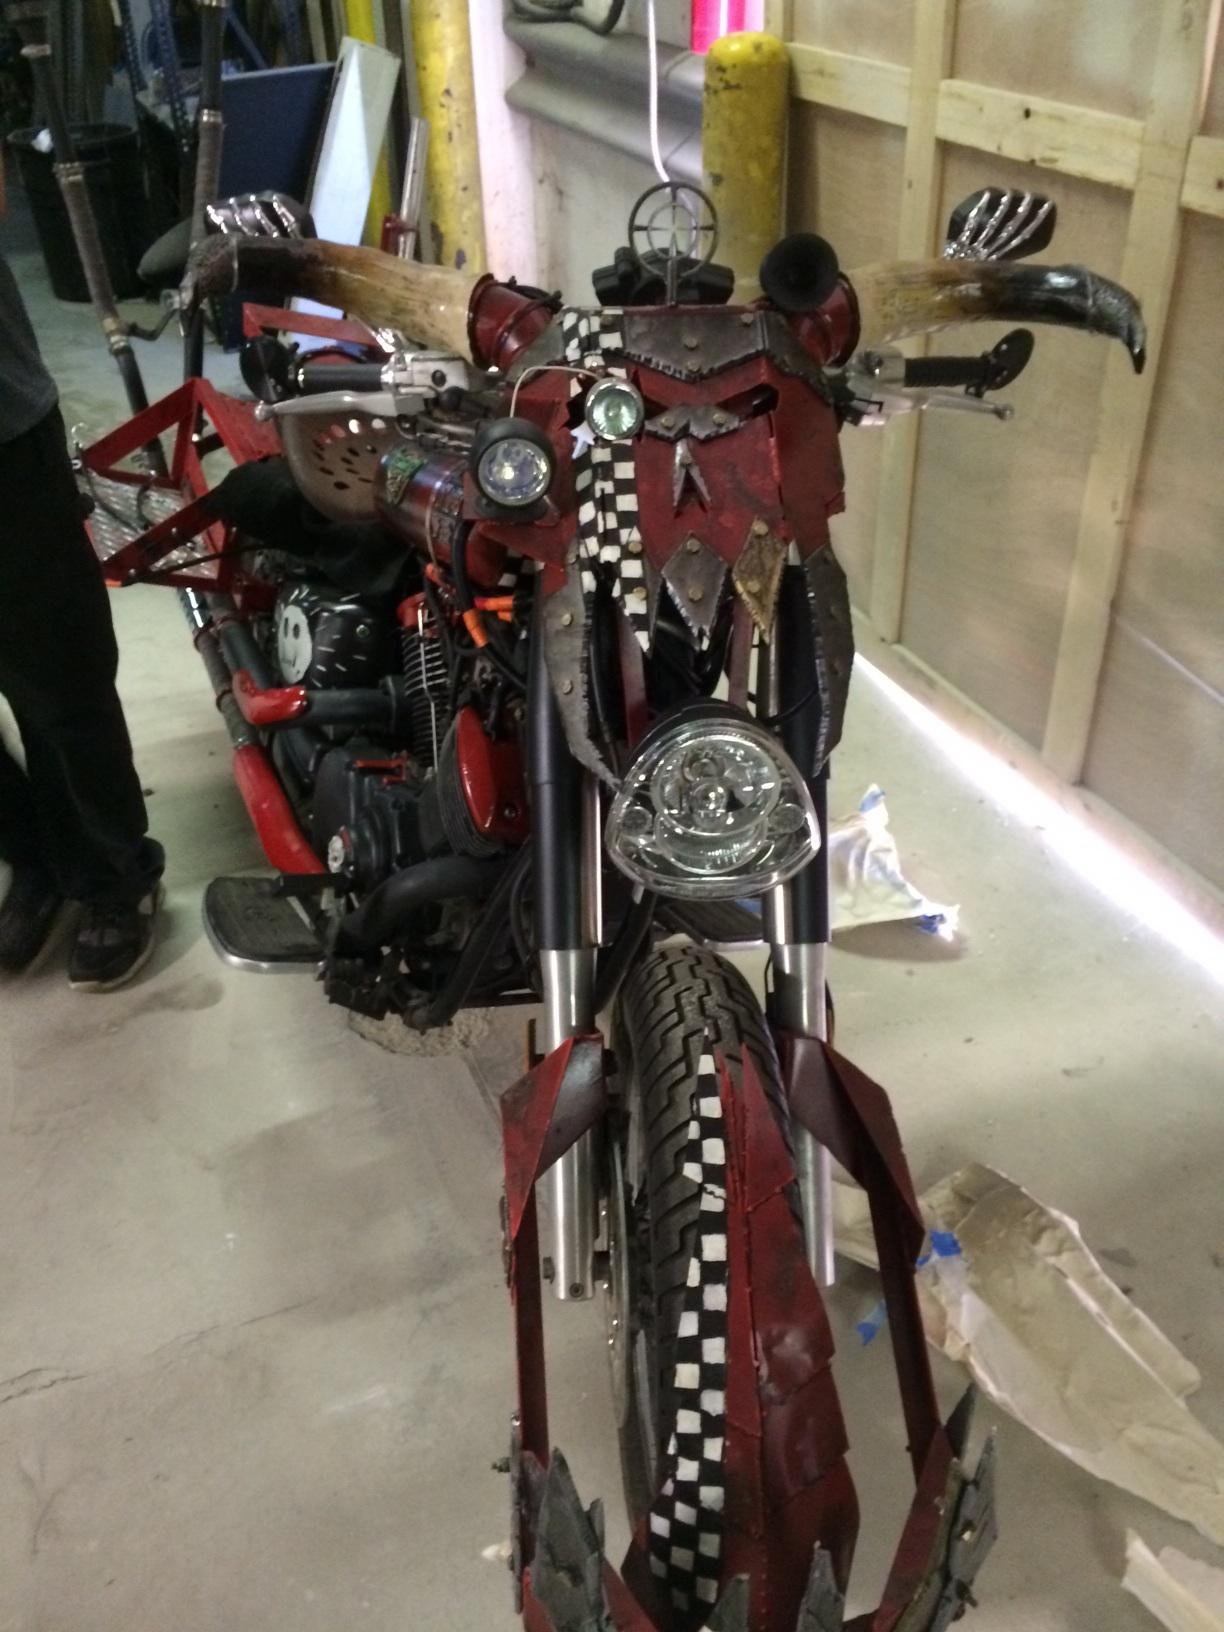 Life-size, Motorcycle, Orks, Warhammer 40,000